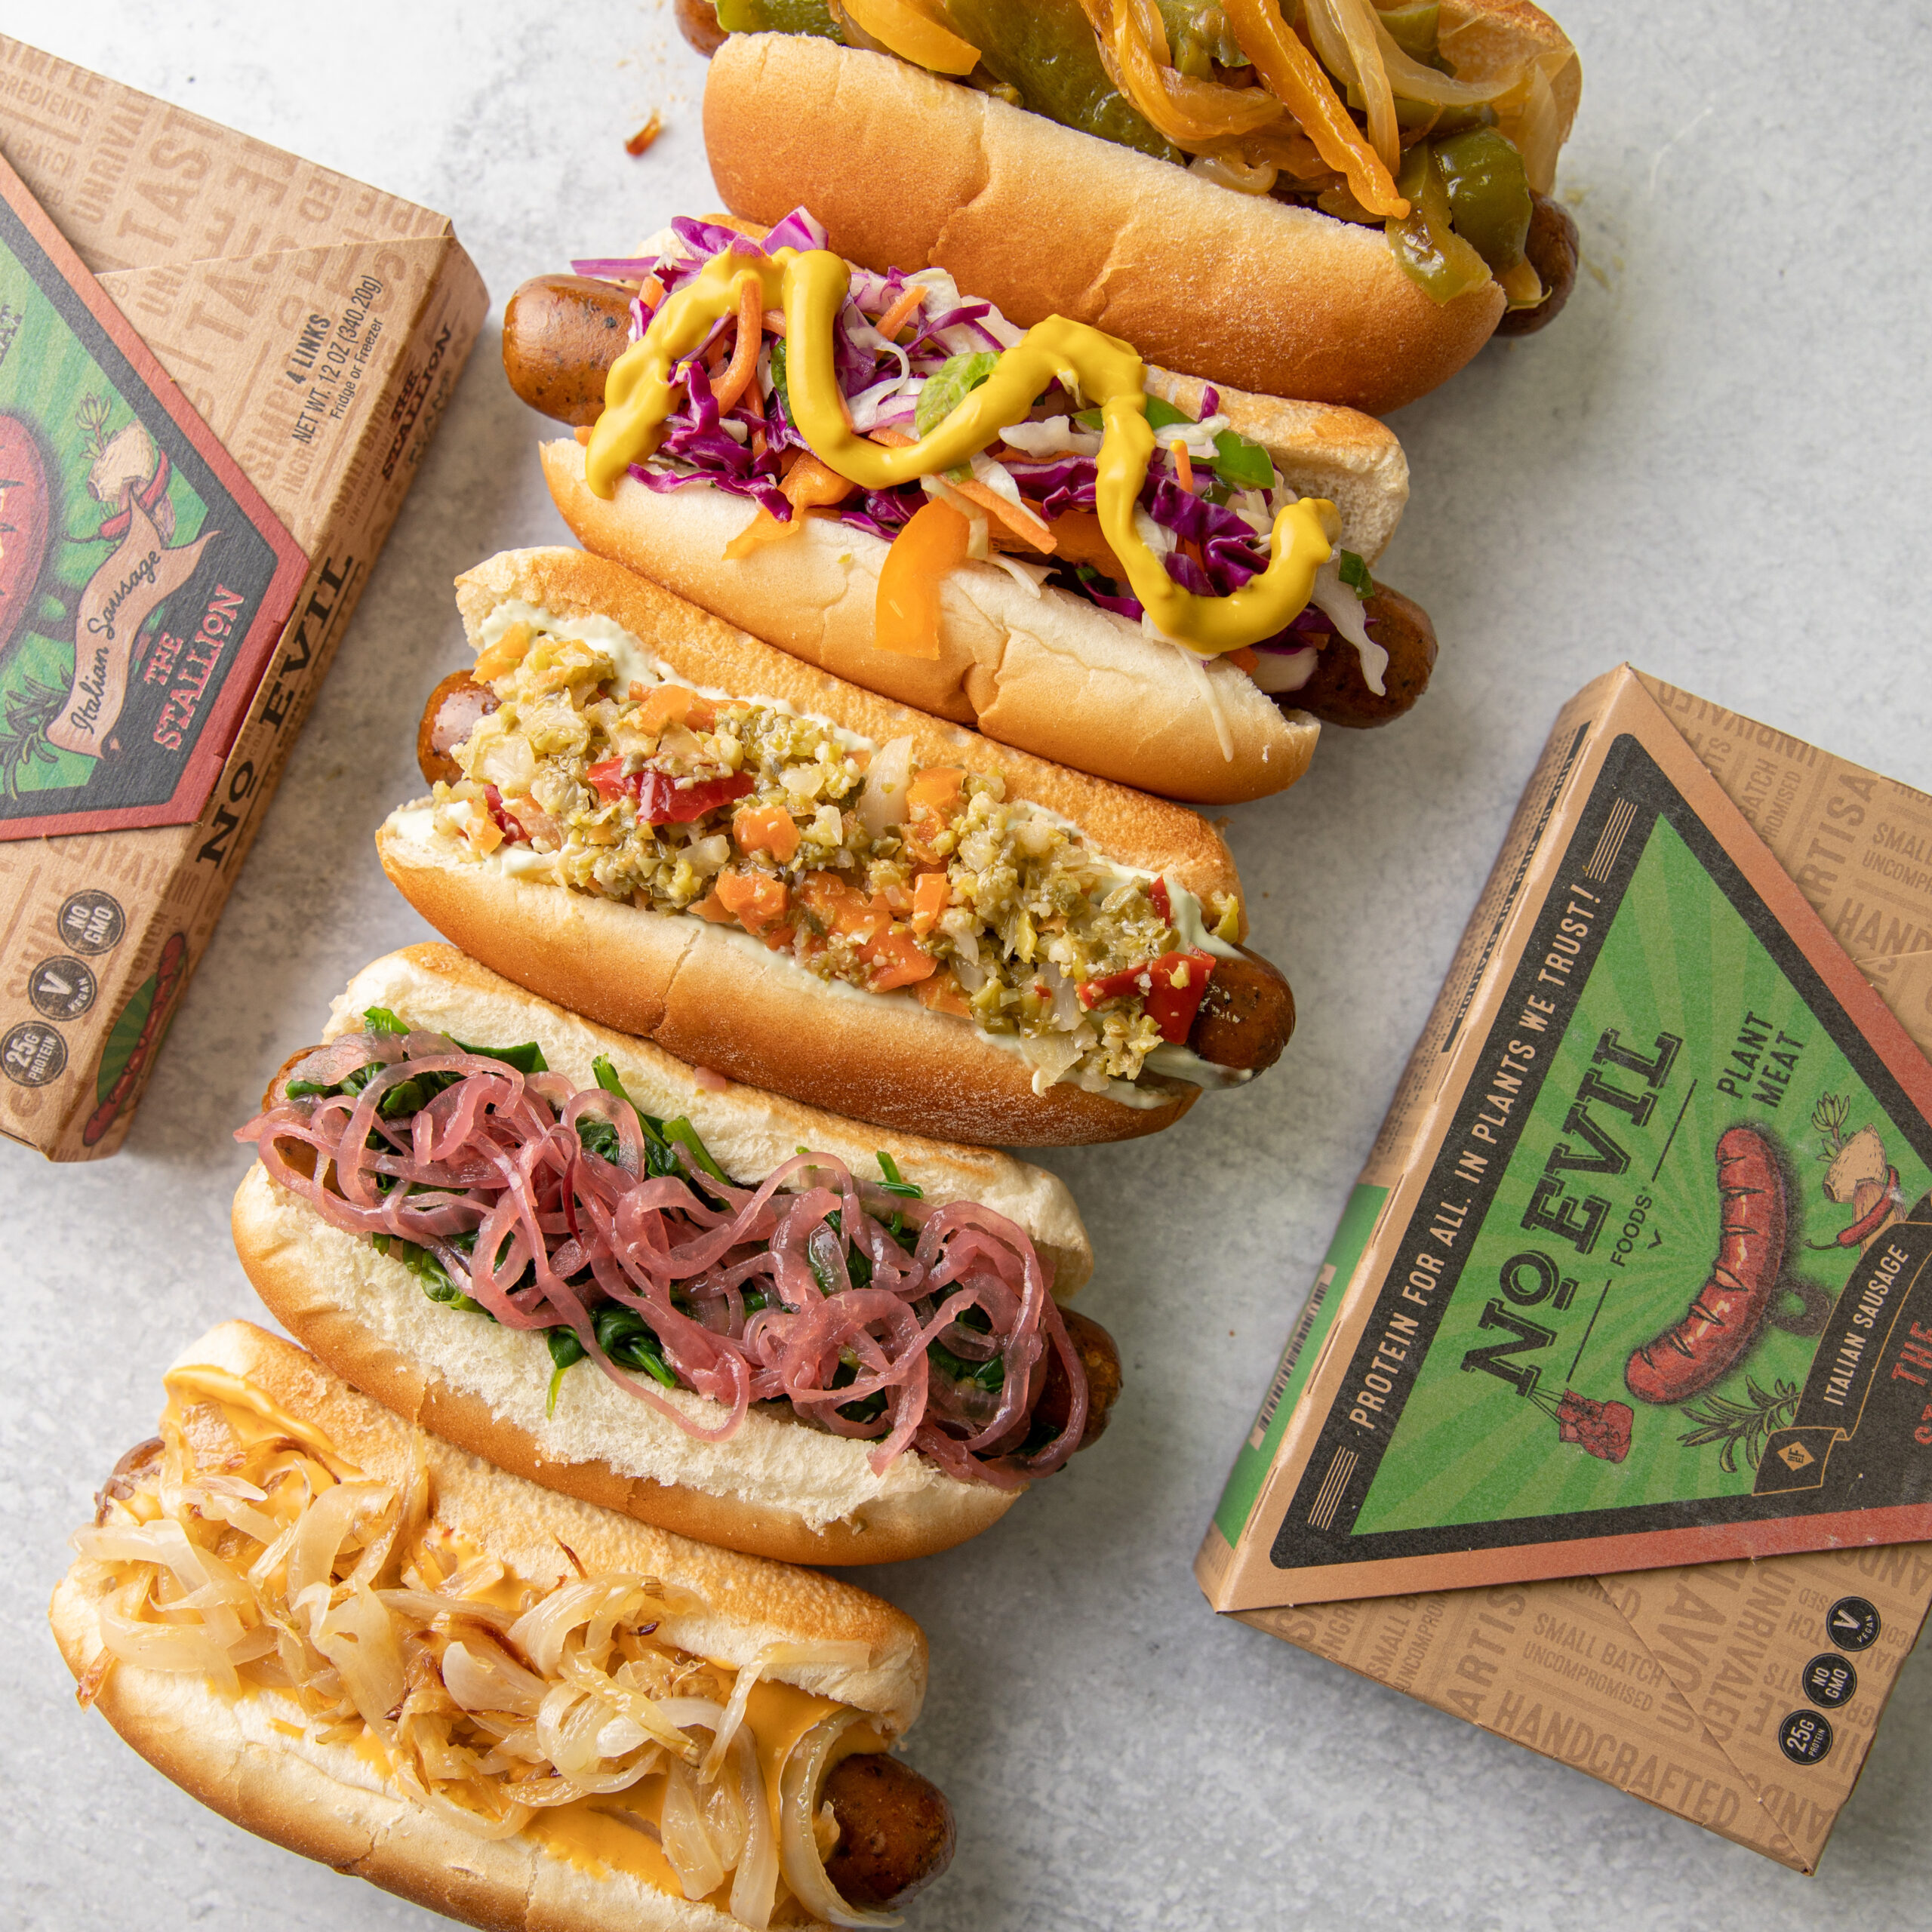 No Evil Foods The Stallion Italian 'Sausage' loaded hot dogs